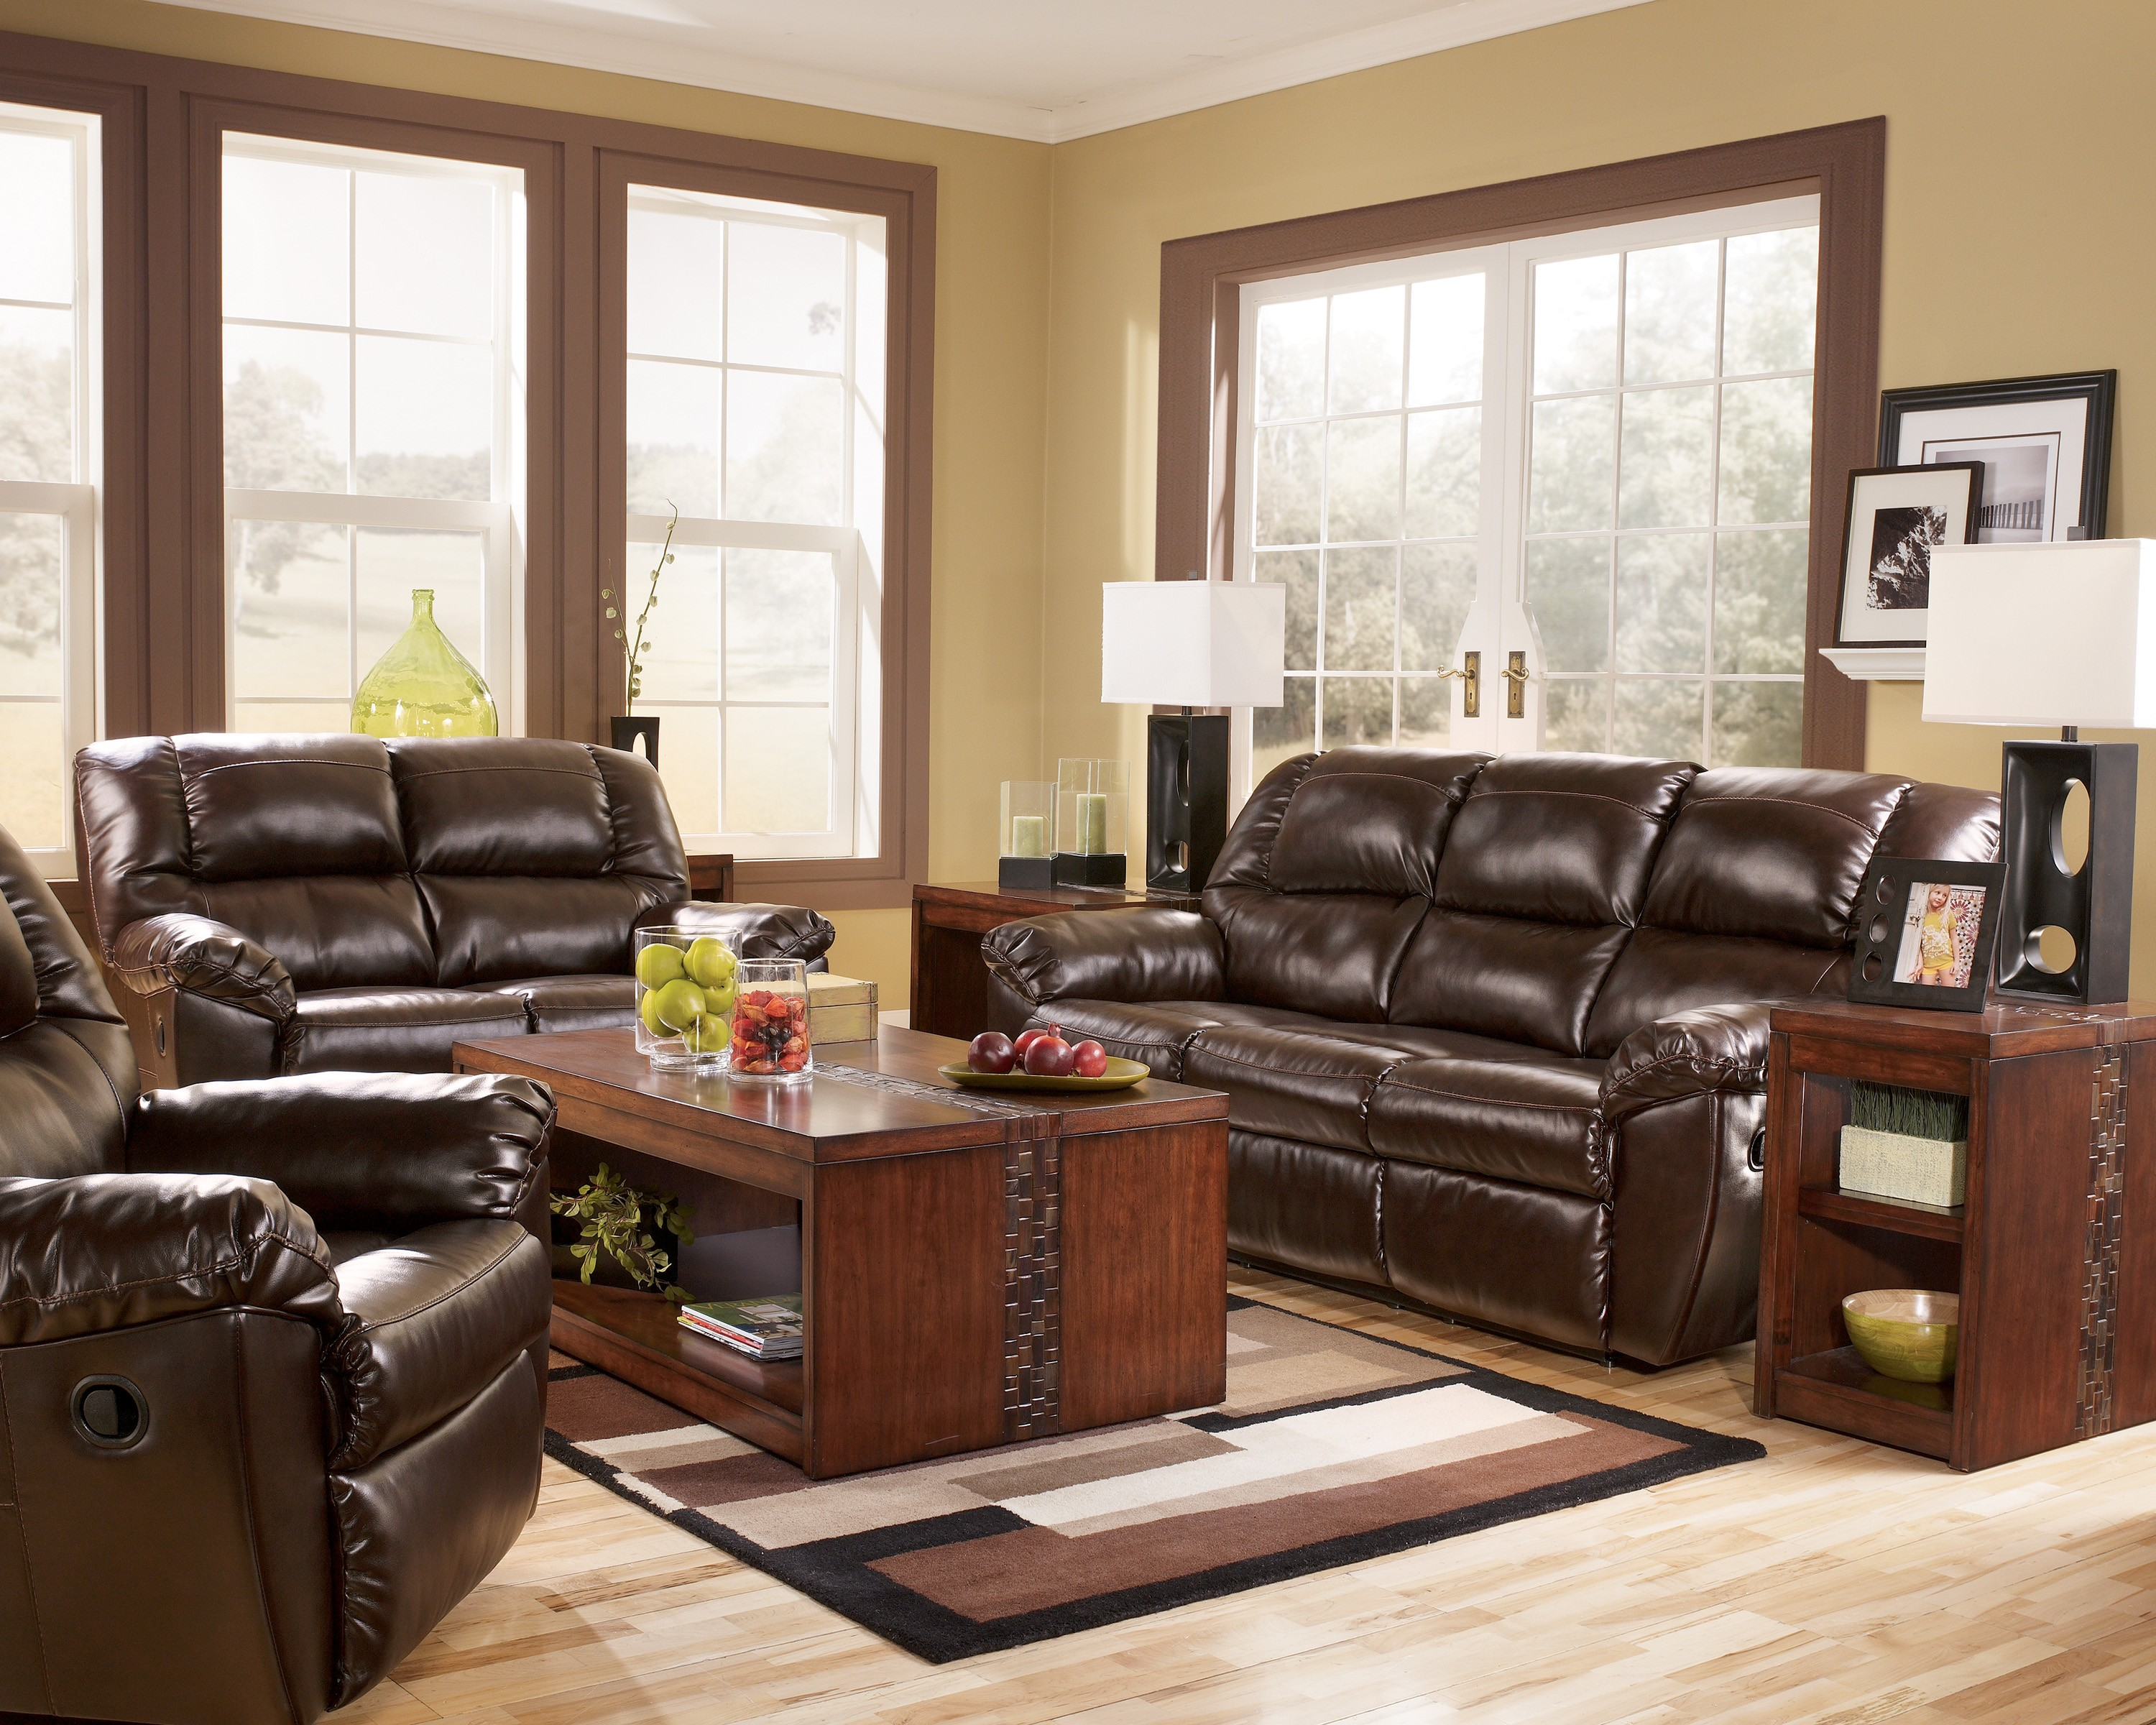 Rouge durablend mahogany power reclining living room set for Cheap reclining living room sets